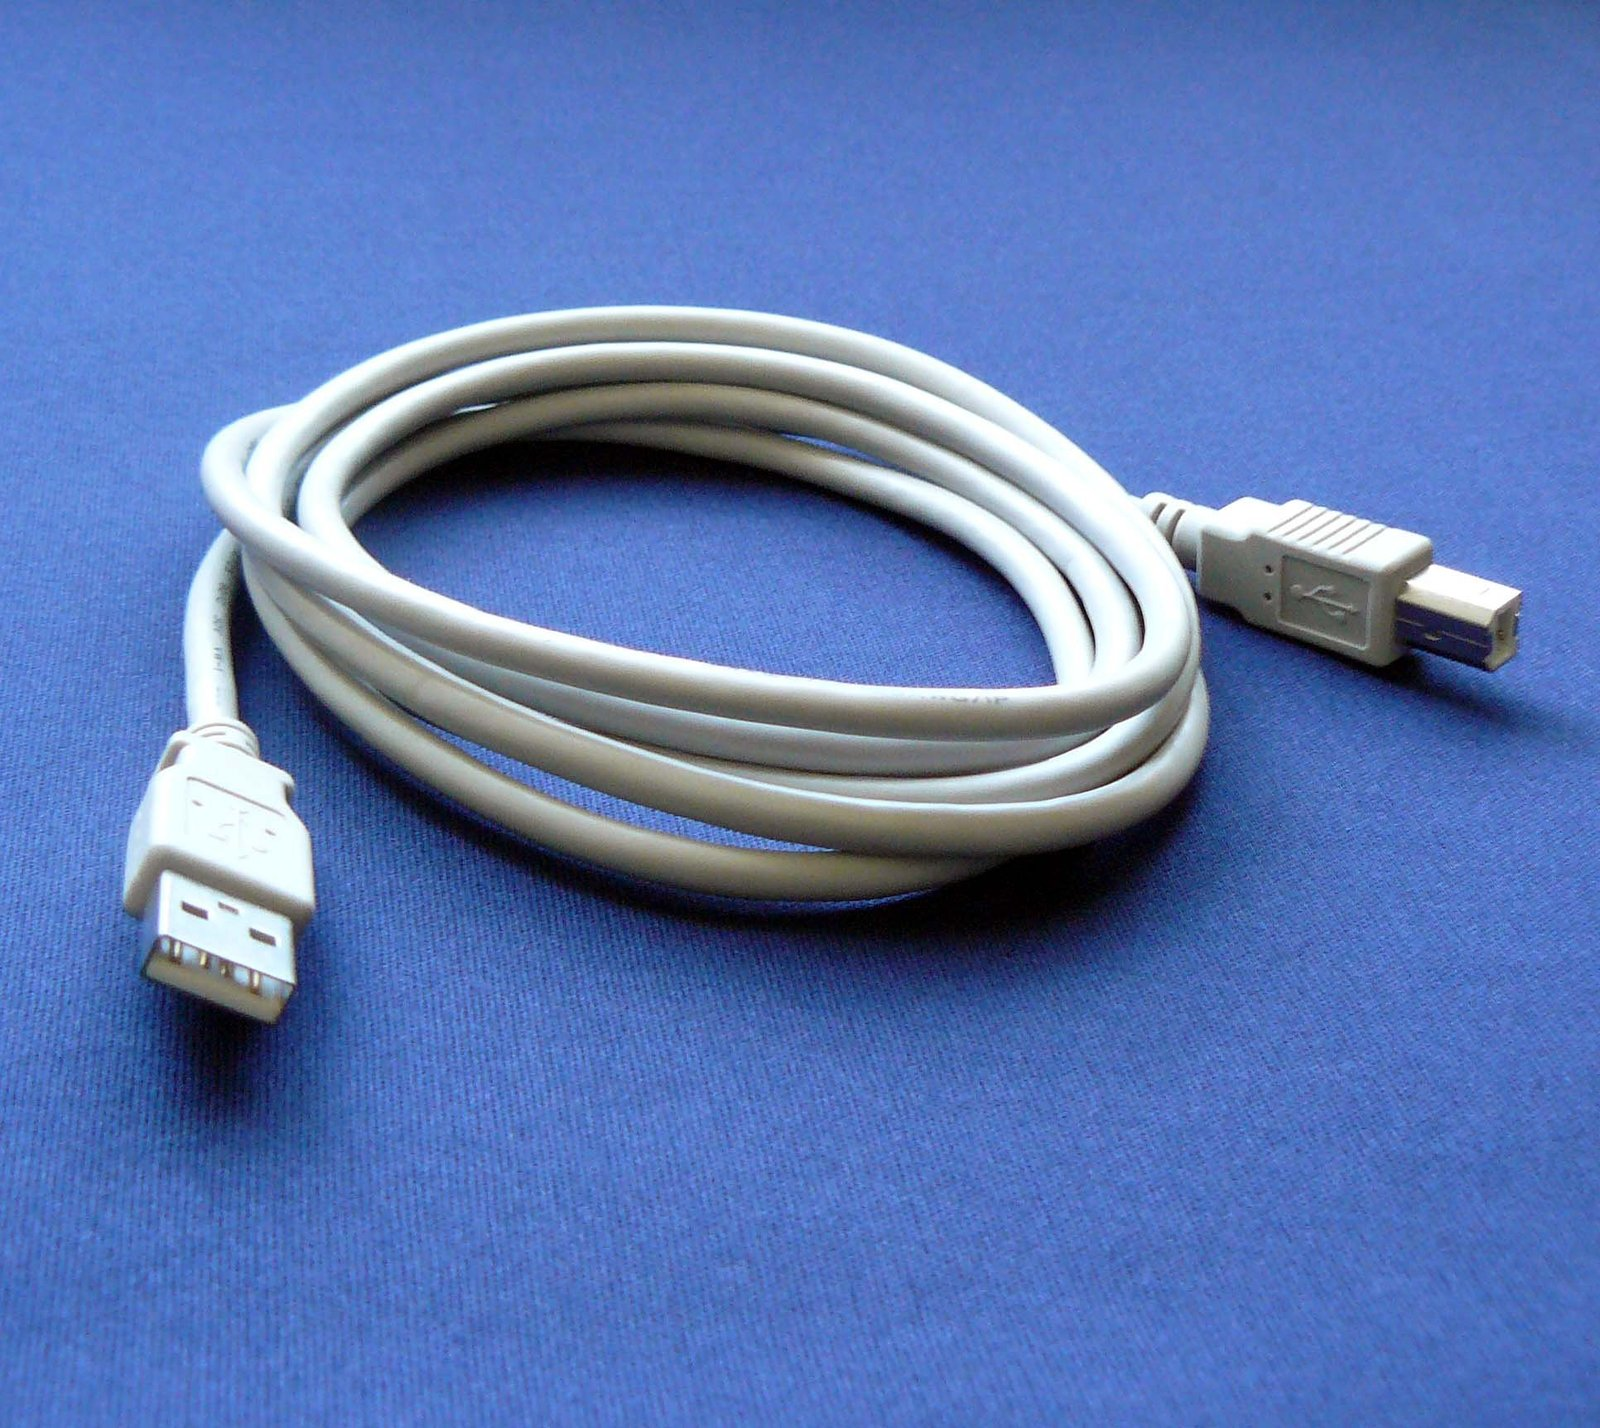 Primary image for Epson PictureMate Personal Photo Printer Compatible USB 2.0 Cable Cord for PC...